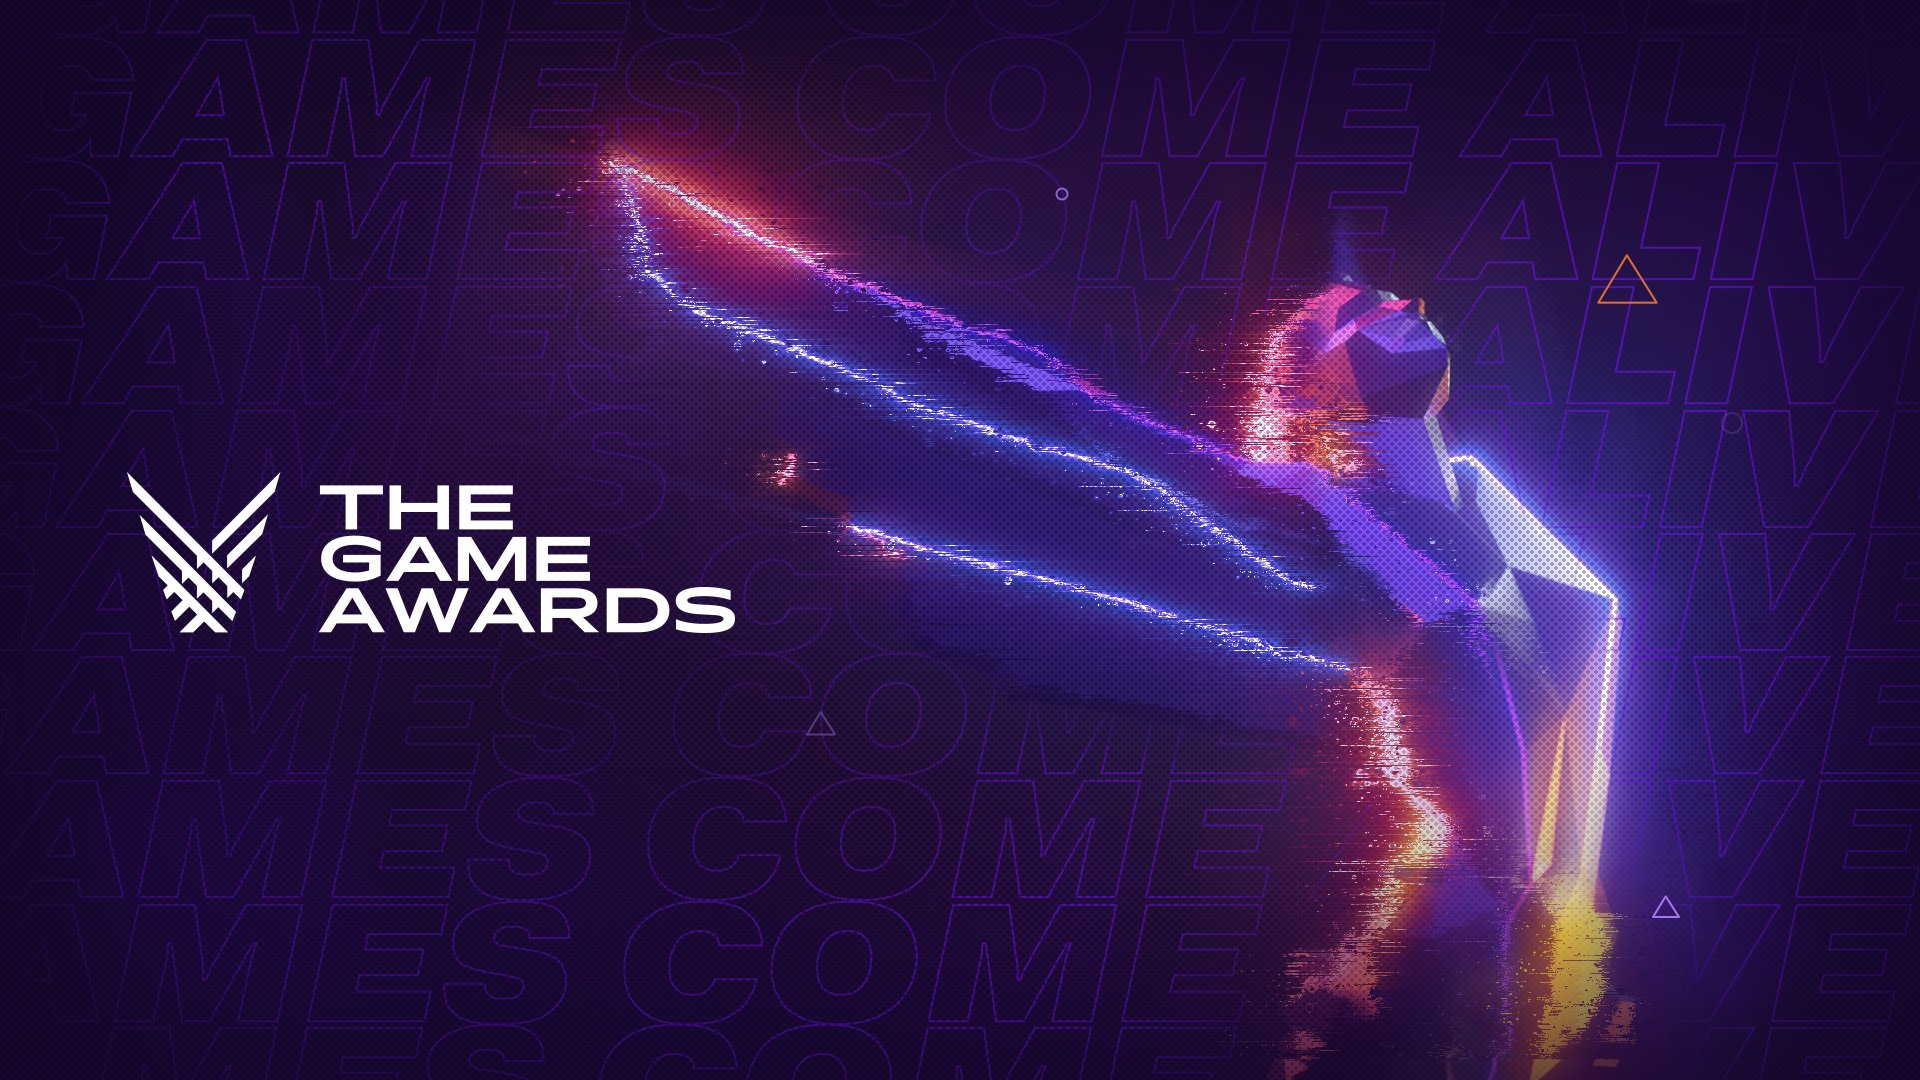 Games Awards 2020.Death Stranding And Control Lead Game Awards 2019